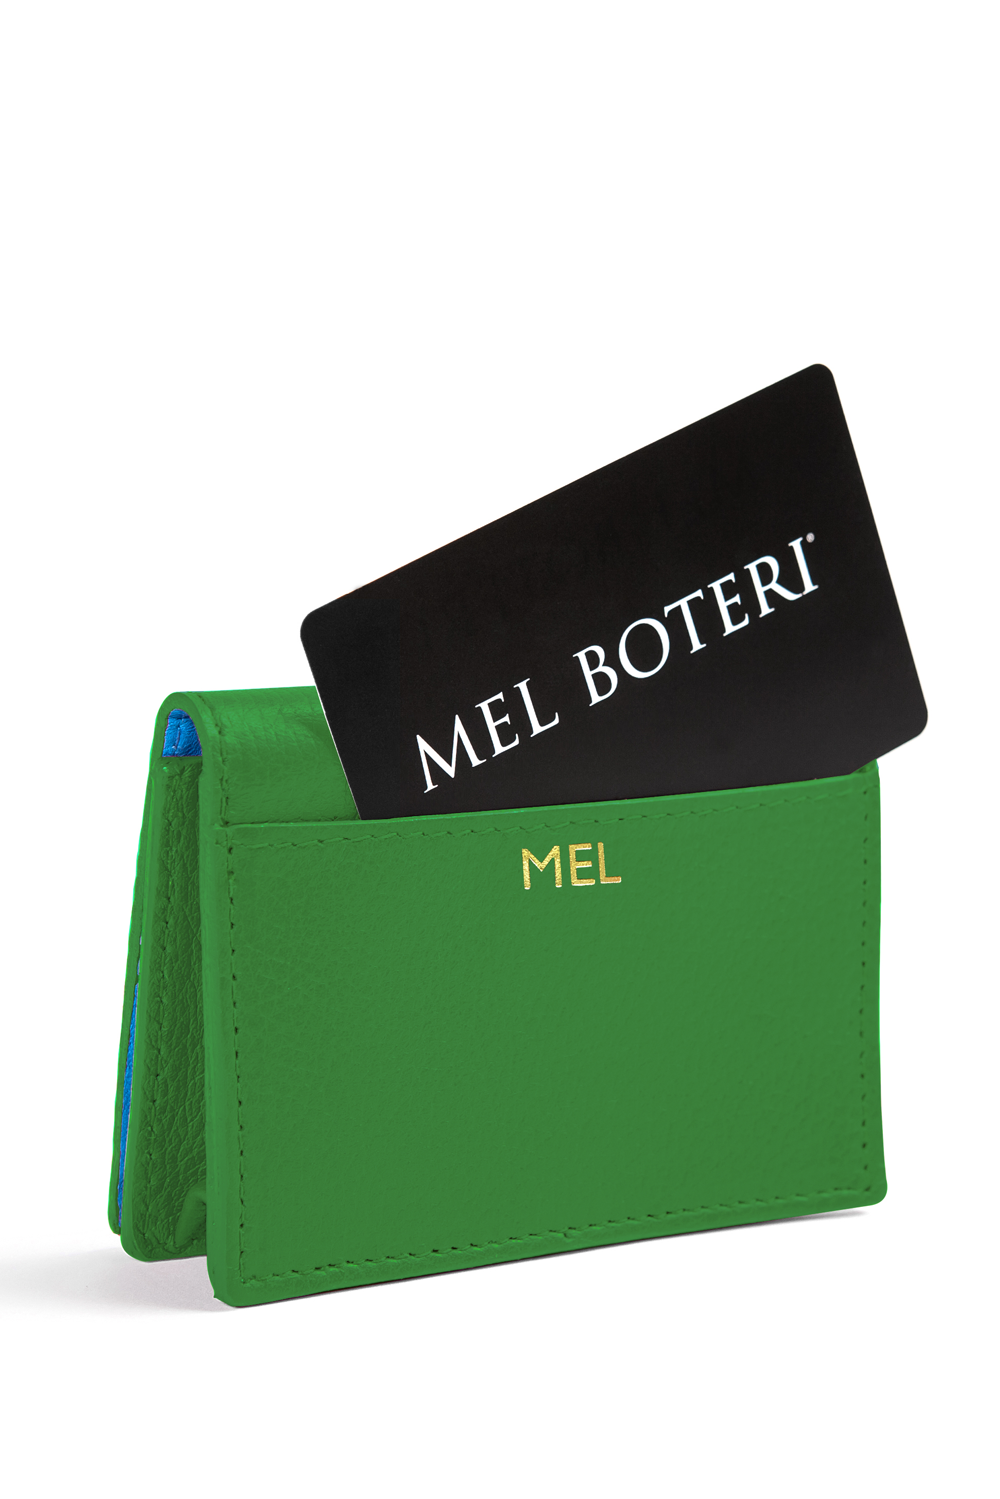 The Mel Boteri Leather Card Holder | Shamrock Leather With Gold Monogram | Mel Boteri Gift Ideas | Design Your Own